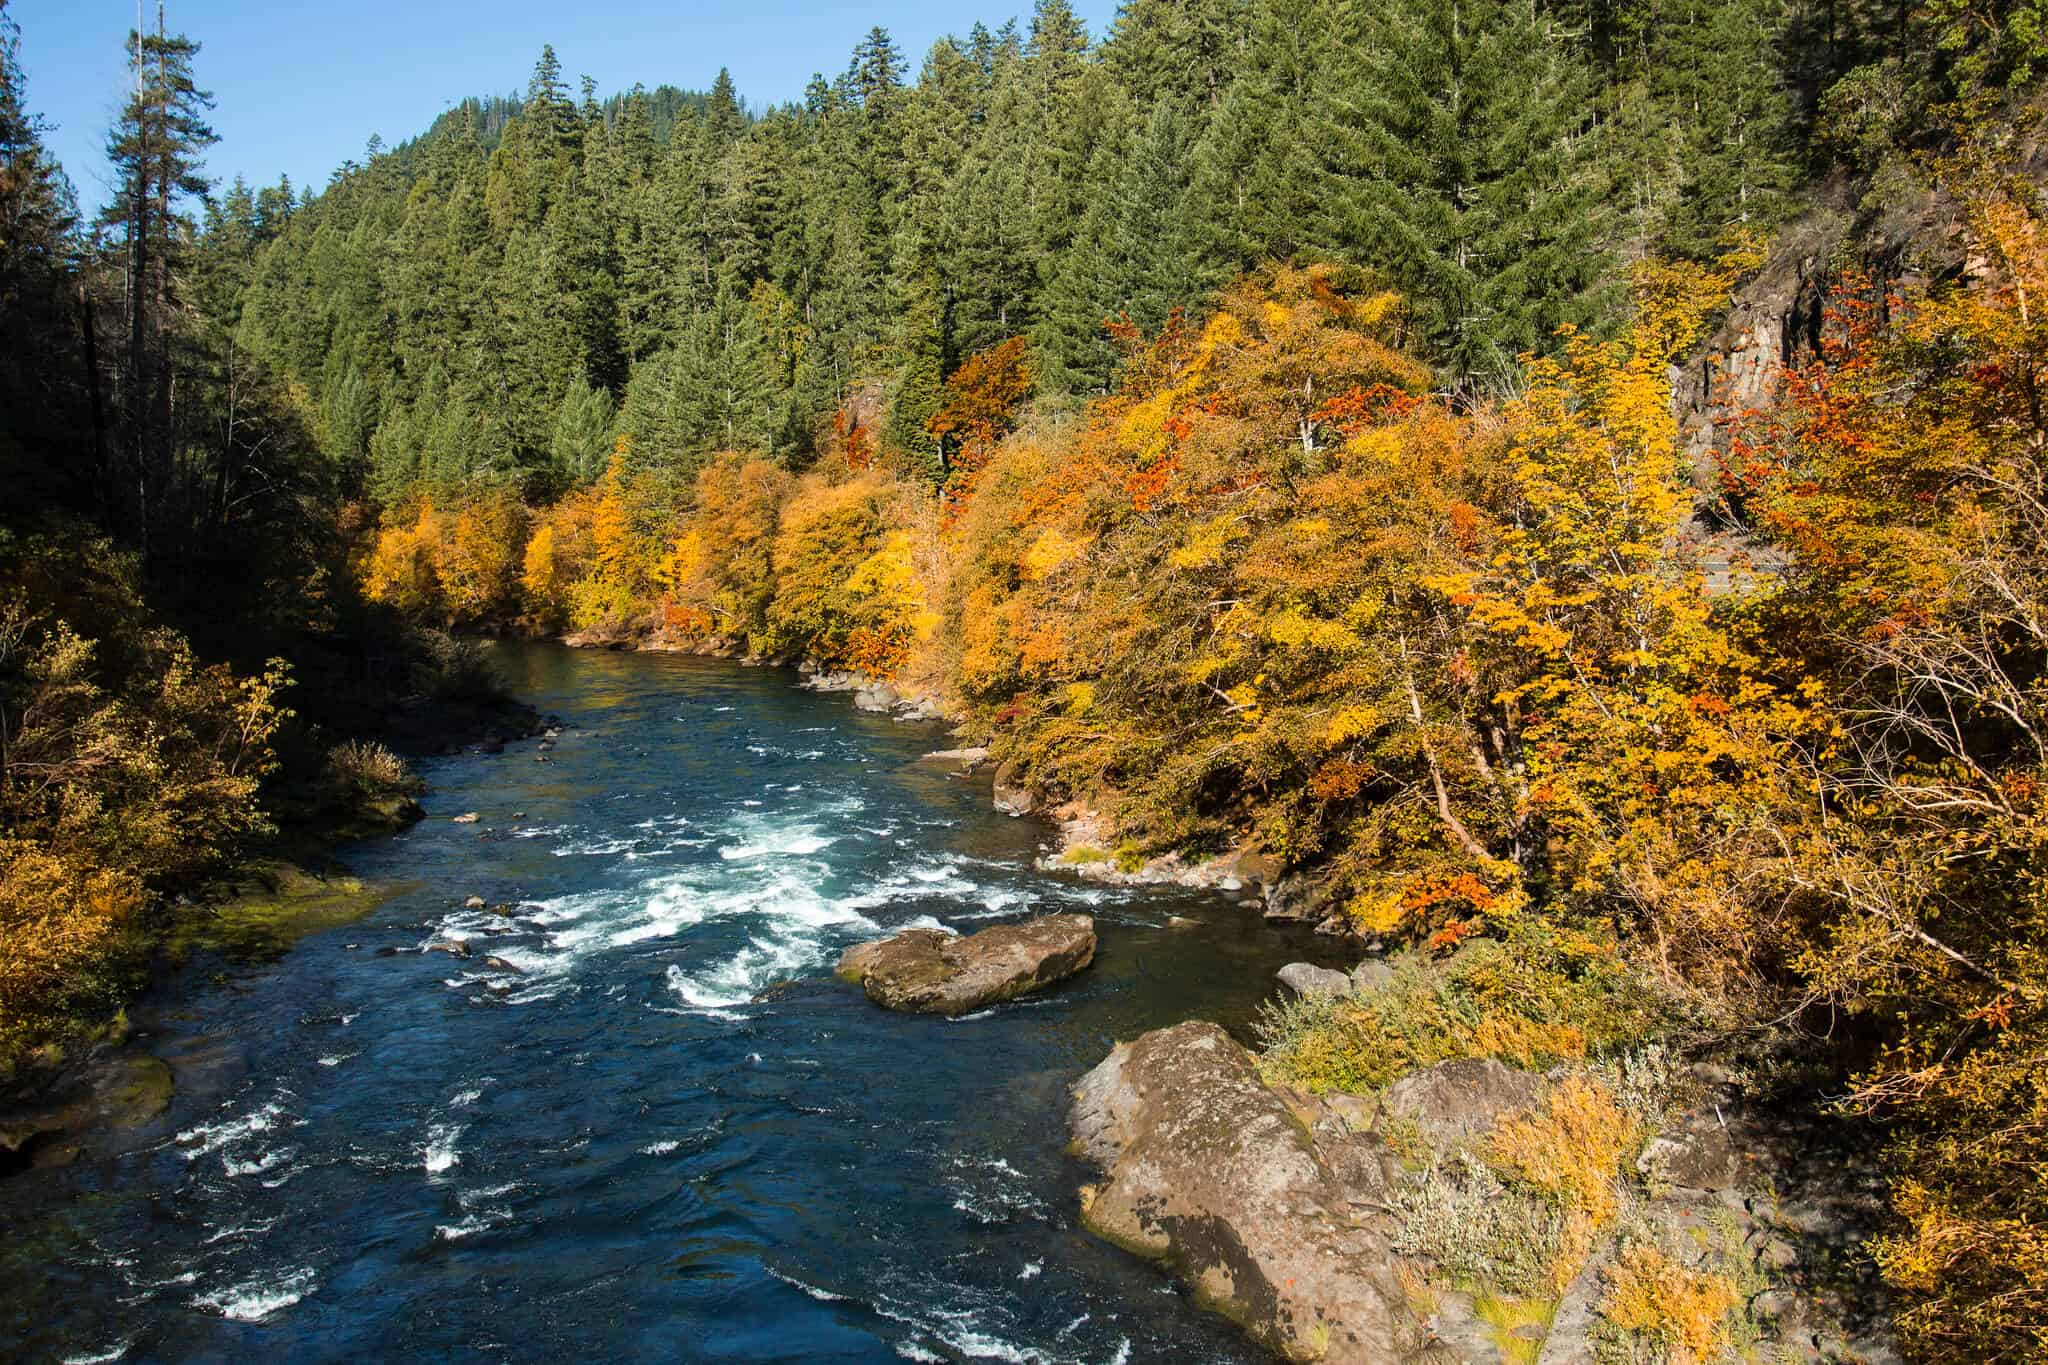 10D7N Pacific Northwest _ California USA (COLL)-2